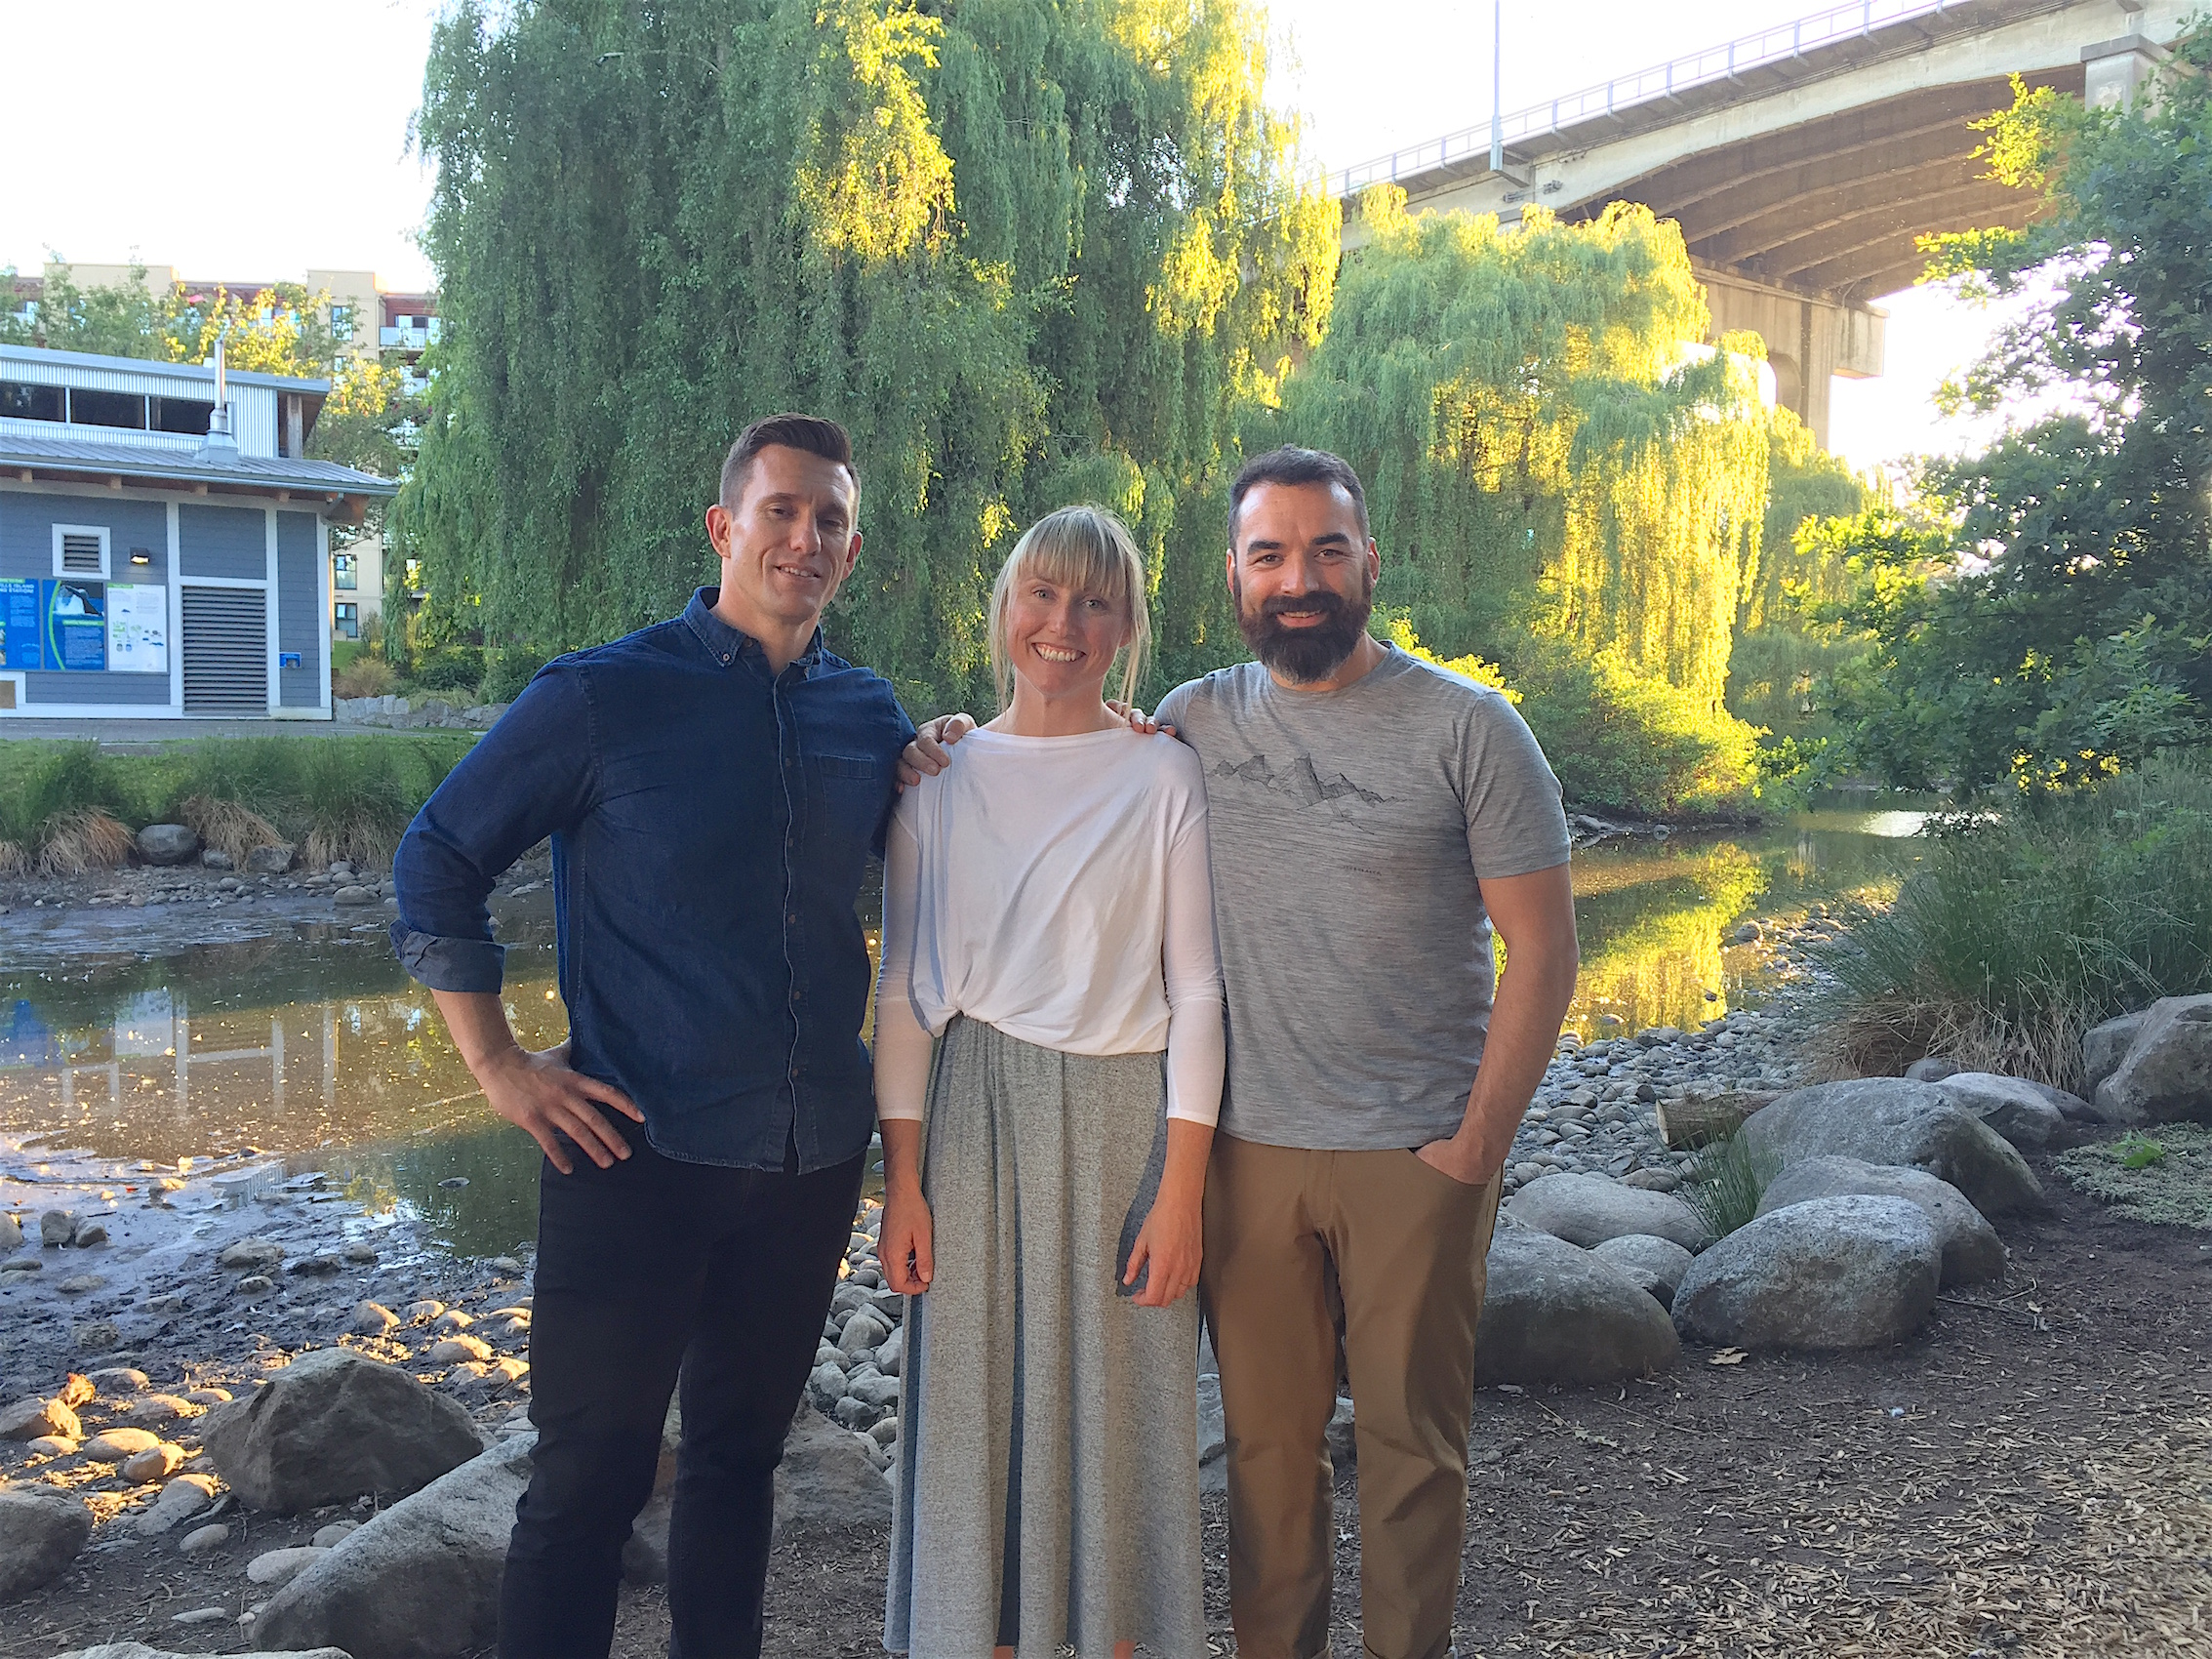 Mindful Mass founders Andy Zaremba, Carolyn Anne Budgell and Chad Weir.